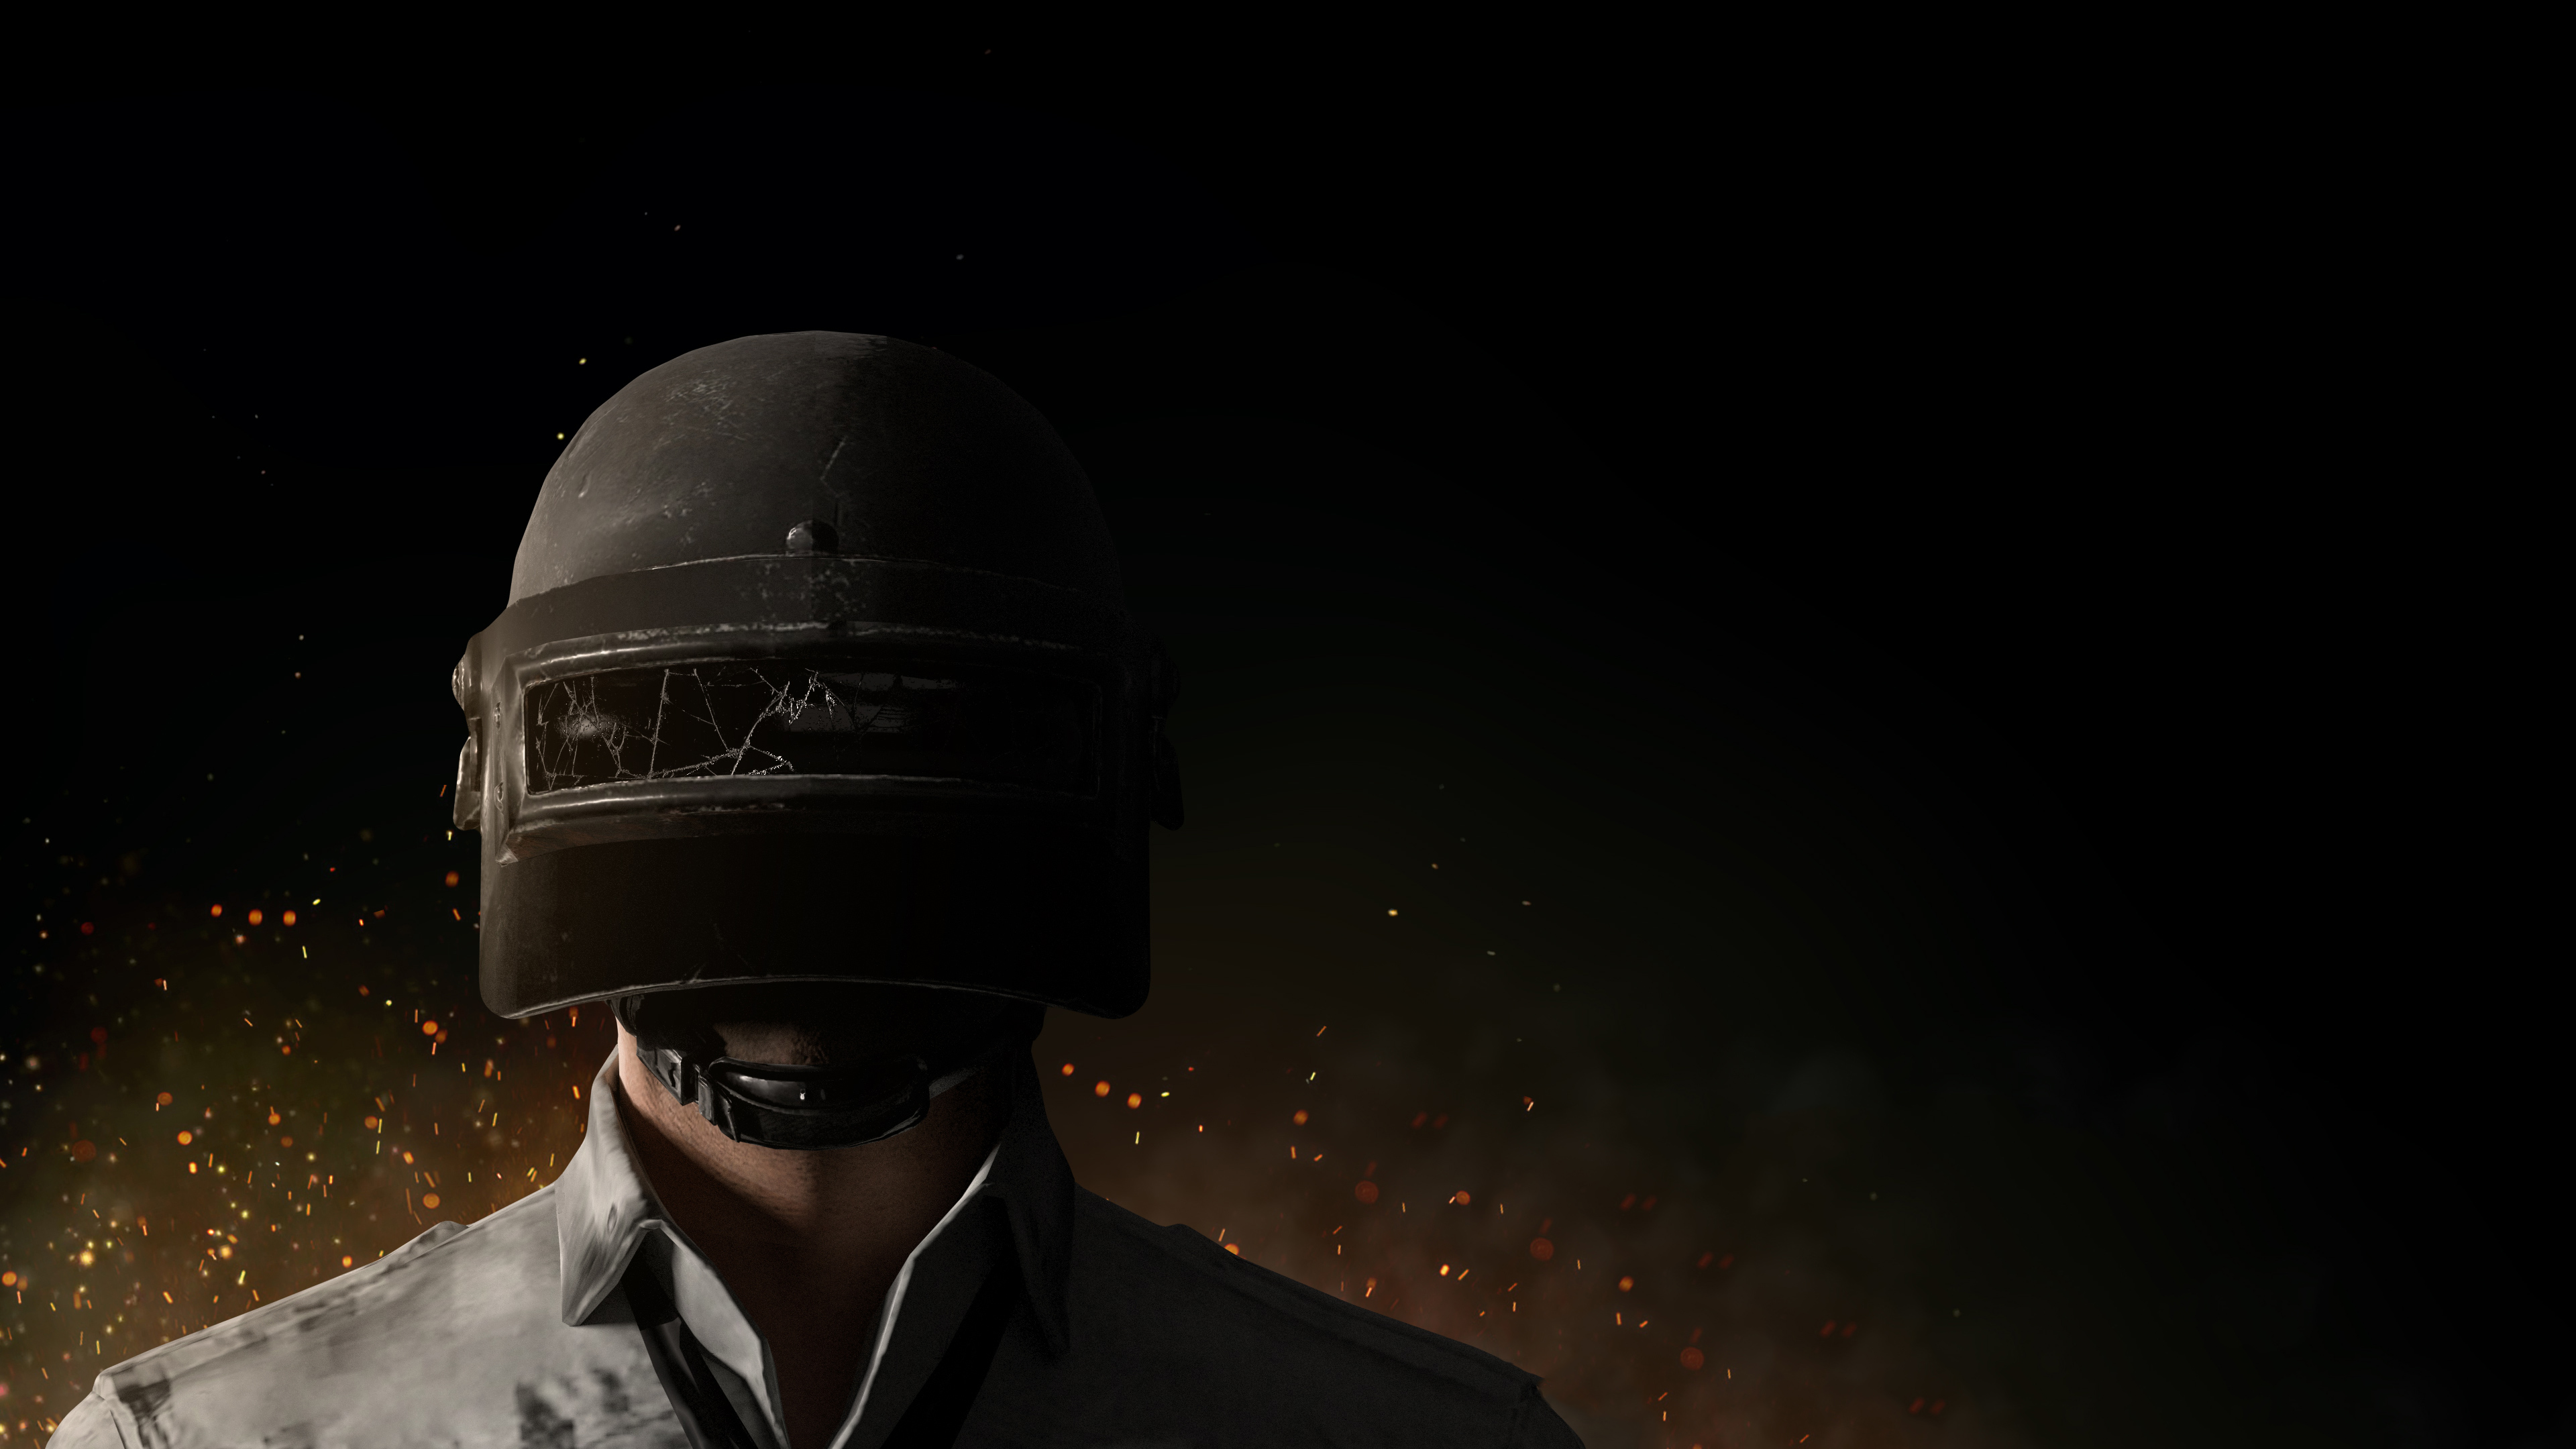 Download Pubg 1 Wallpapers To Your Cell Phone: PUBG Helmet Guy 4k, HD Games, 4k Wallpapers, Images